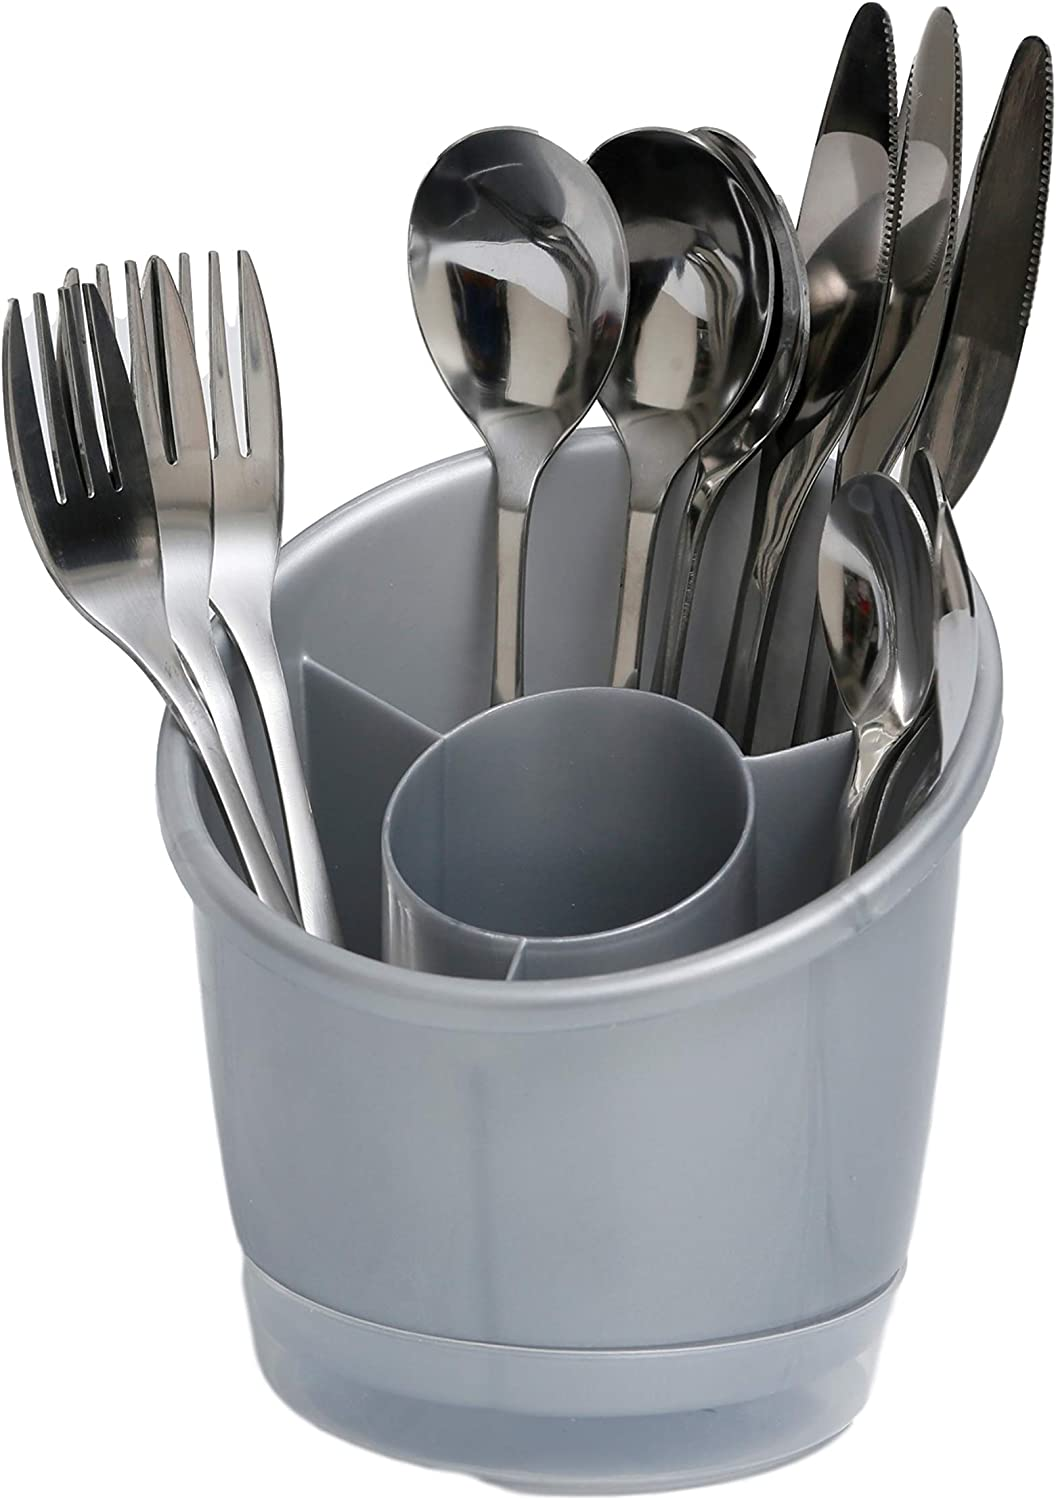 CELESTE HOME PRODUCTS Cutlery and Utensil Storage Organizer for Kitchen, Pantry, Table and Countertop – Specially designed to hold and organize forks, Knives, spoons and kitchen utensils.